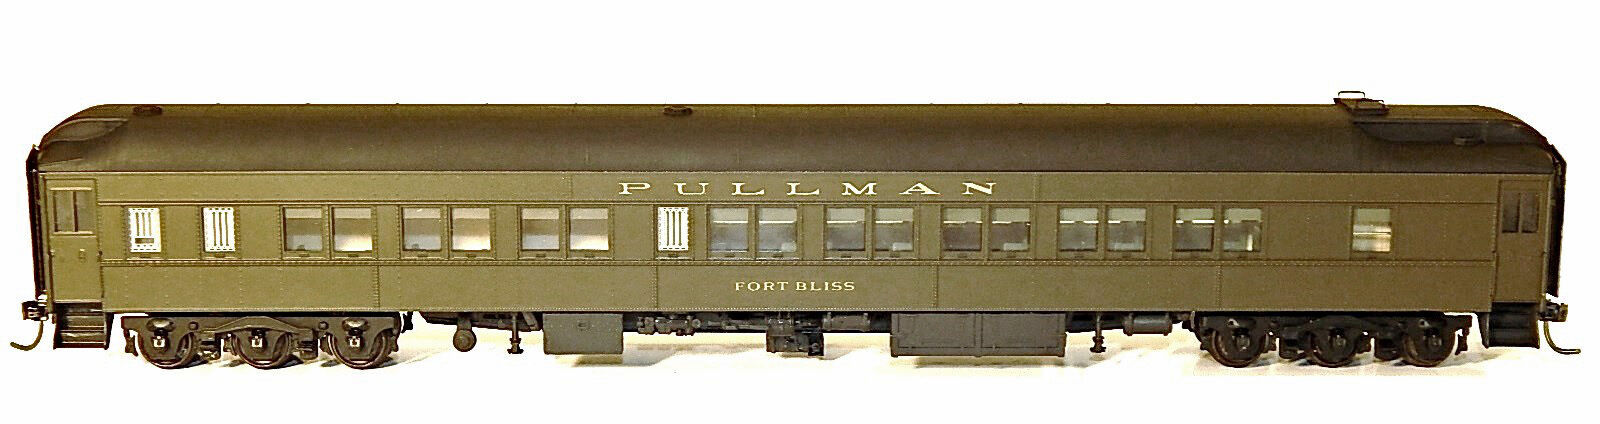 Ahorre 35% - 70% de descuento Boston & Maine Fort Bliss-Fort Slocum HO Modelo Del FerroCocheril FerroCocheril FerroCocheril sin pintar KIT BC1306  comprar mejor